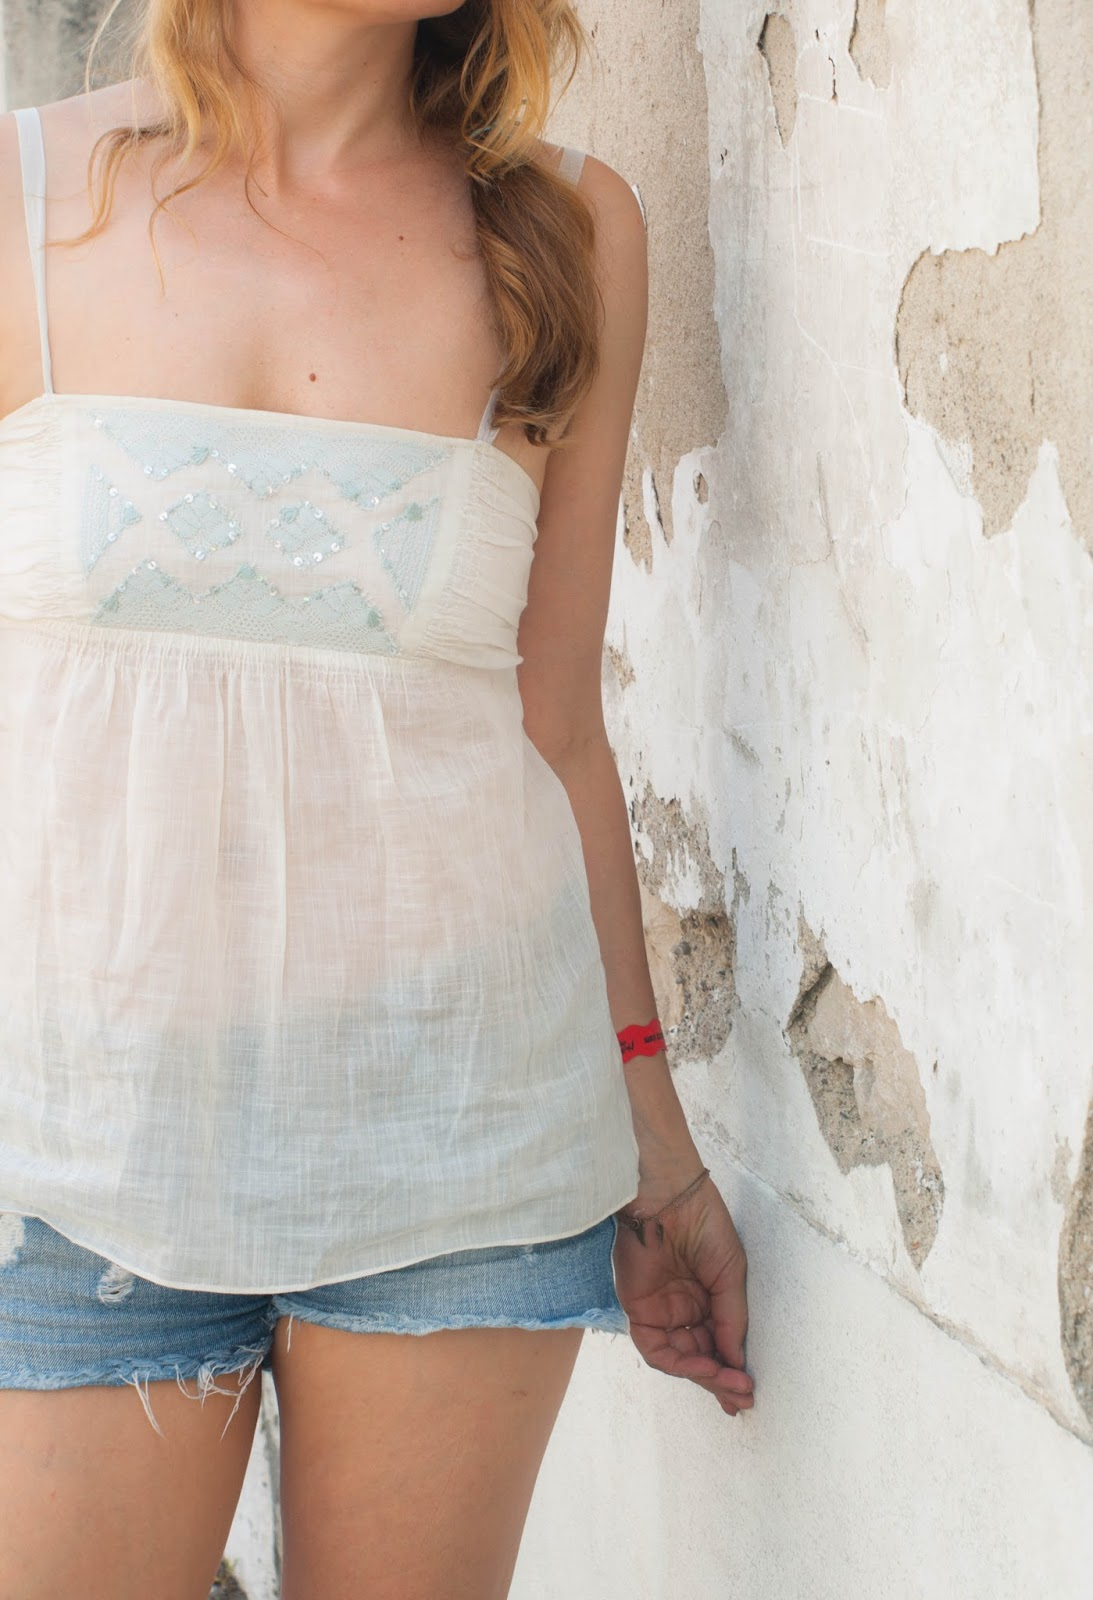 Cut offs, denim shorts, Rebecca Taylor top, summer outfit, beach outfit, what to wear when it is warm, Giuseppe Zanottii, panama hat, Pachacuti, max and Co bag